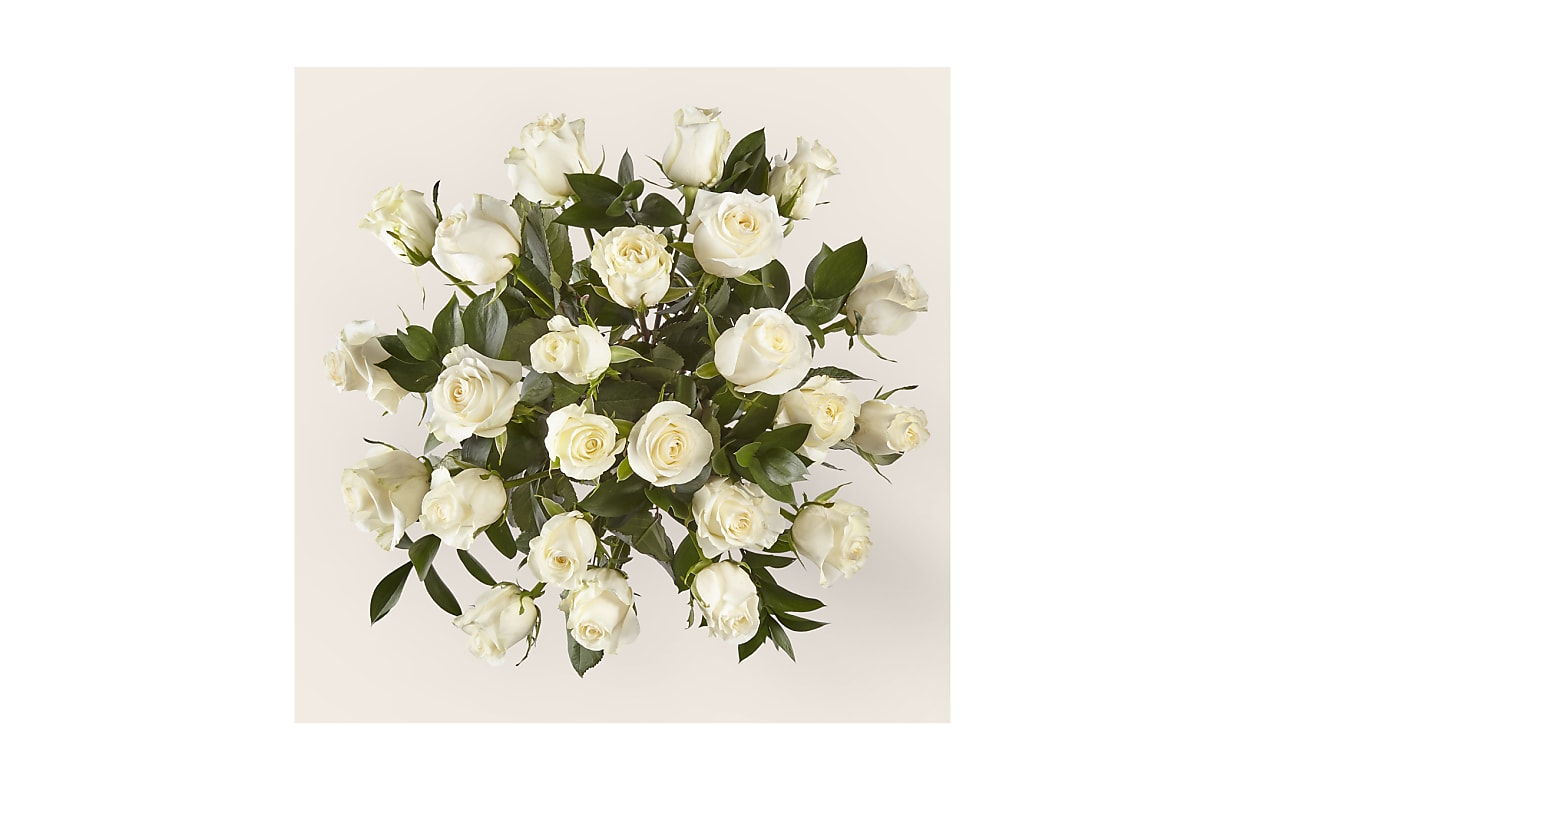 24 Stem Moonlight White Rose Bouquet With Ginger Vase - Image 2 Of 2